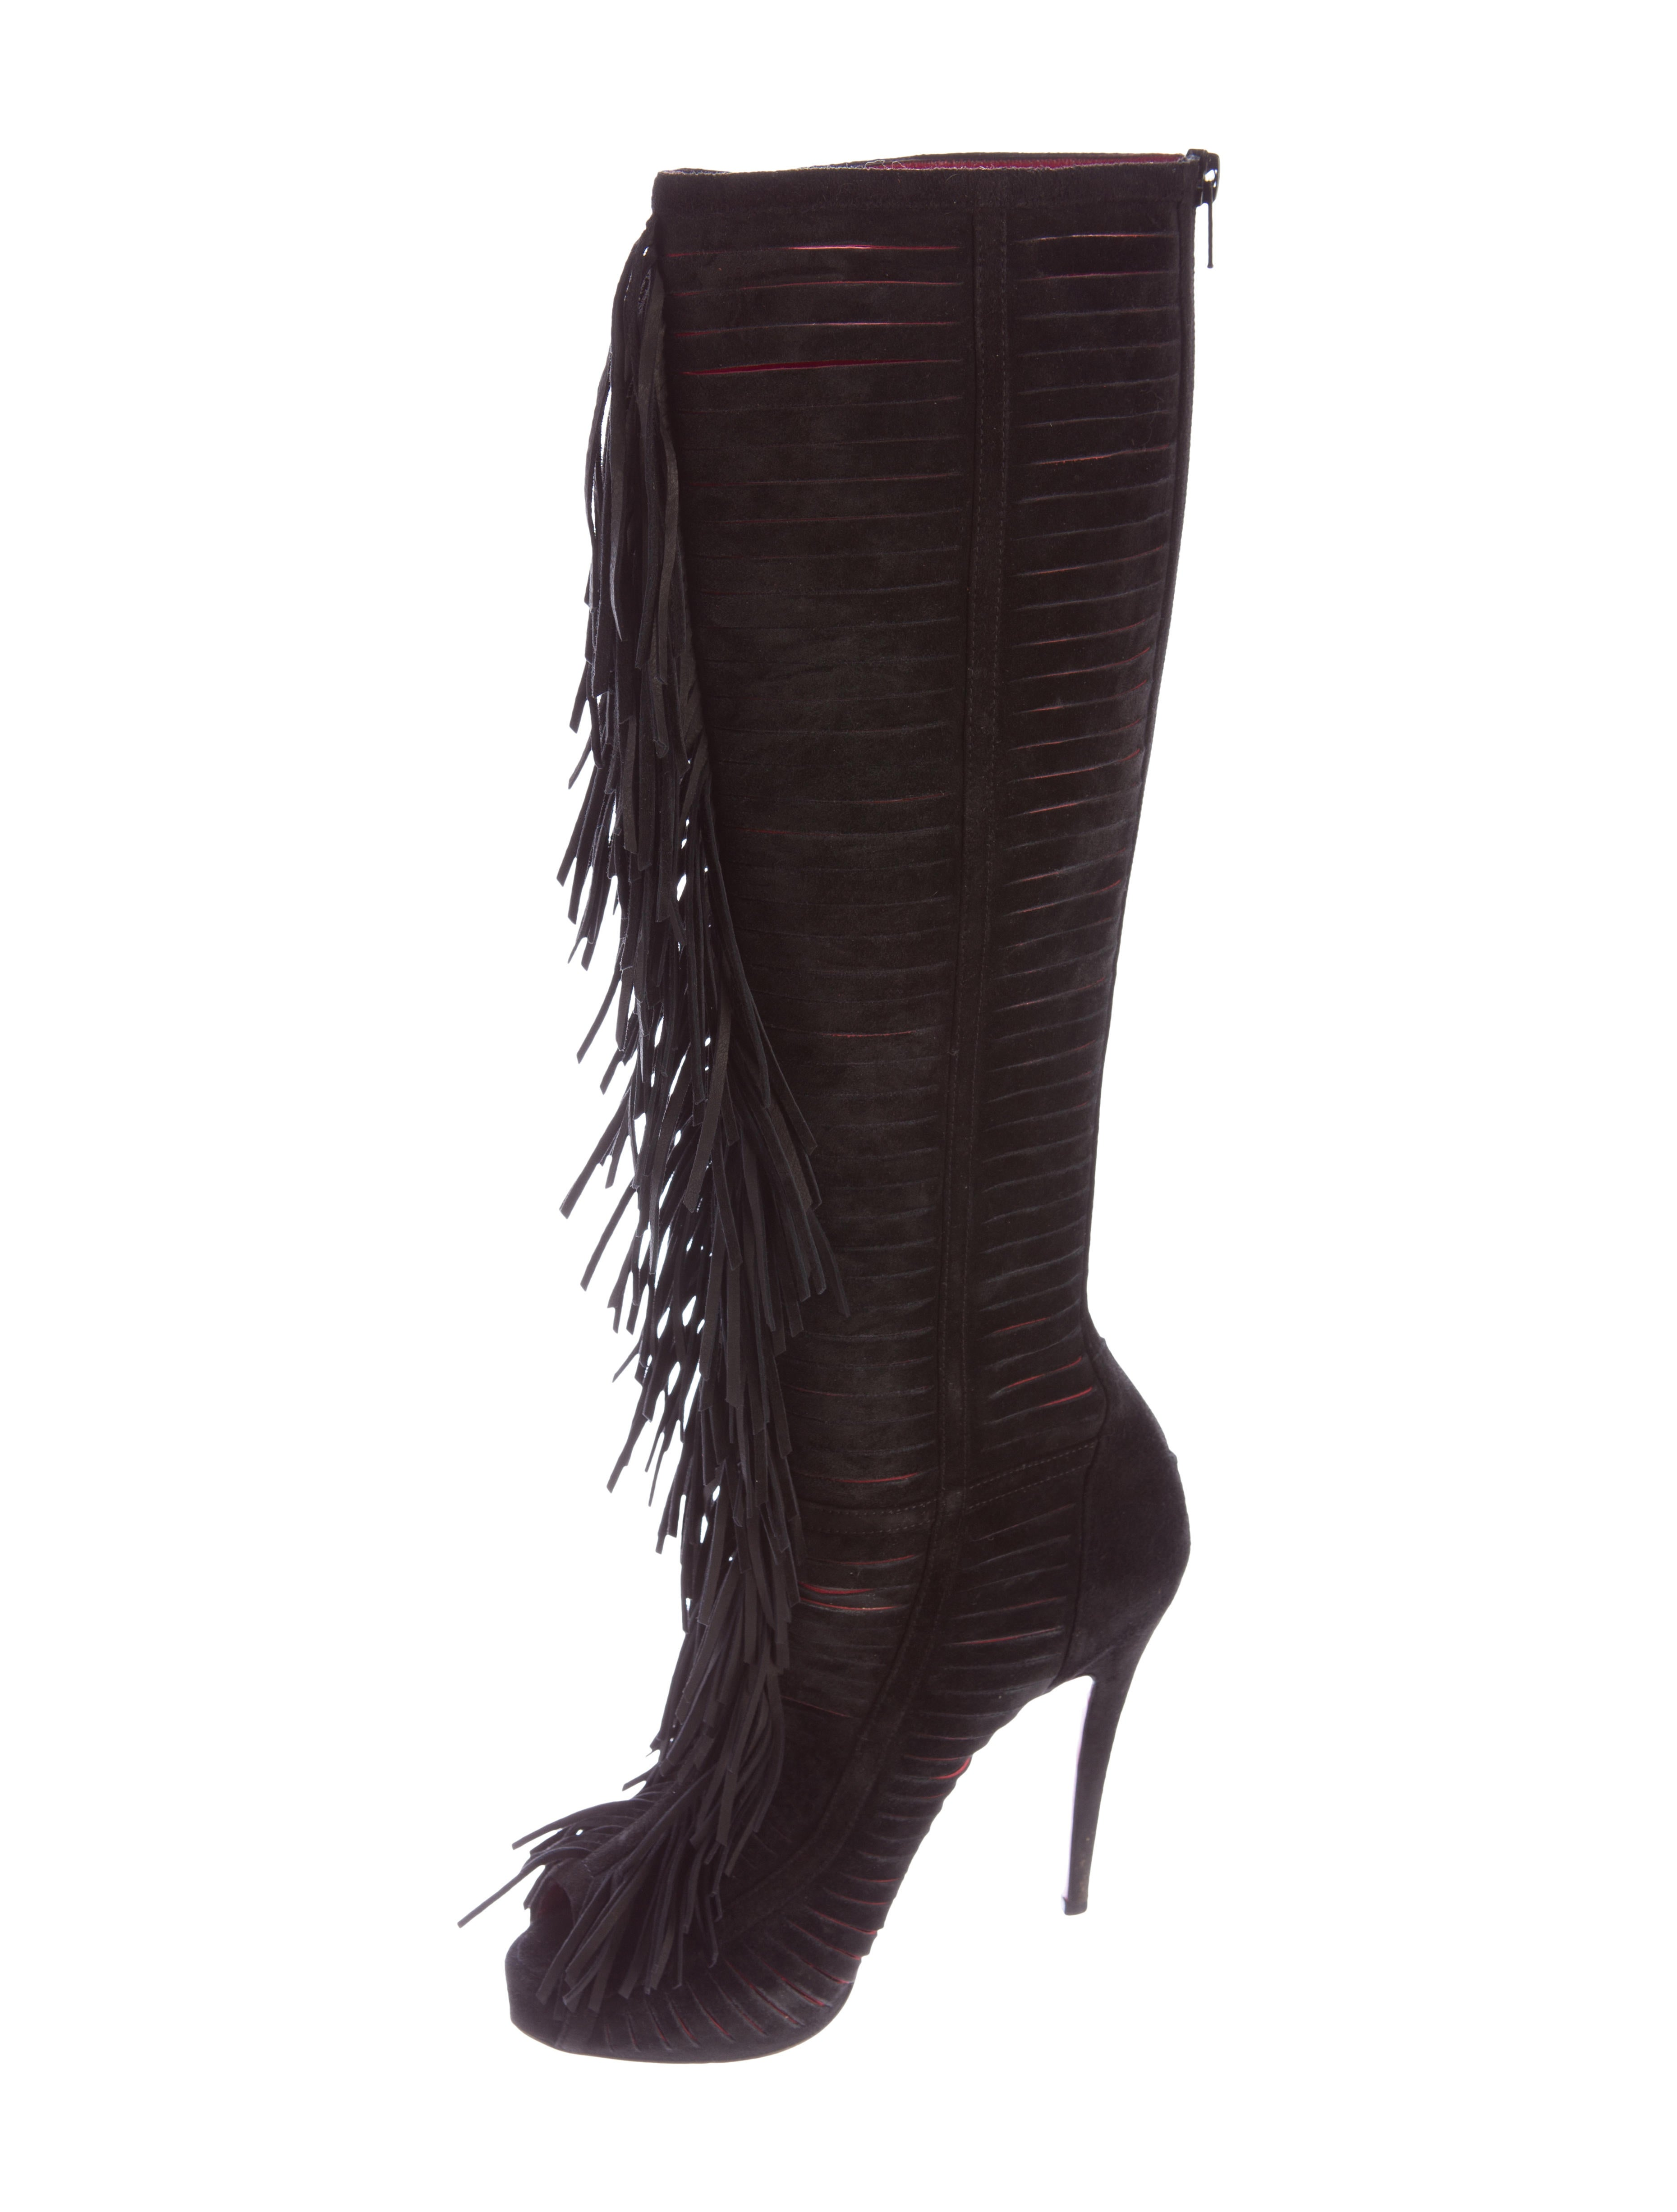 Find great deals on eBay for brown suede fringe boots. Shop with confidence.